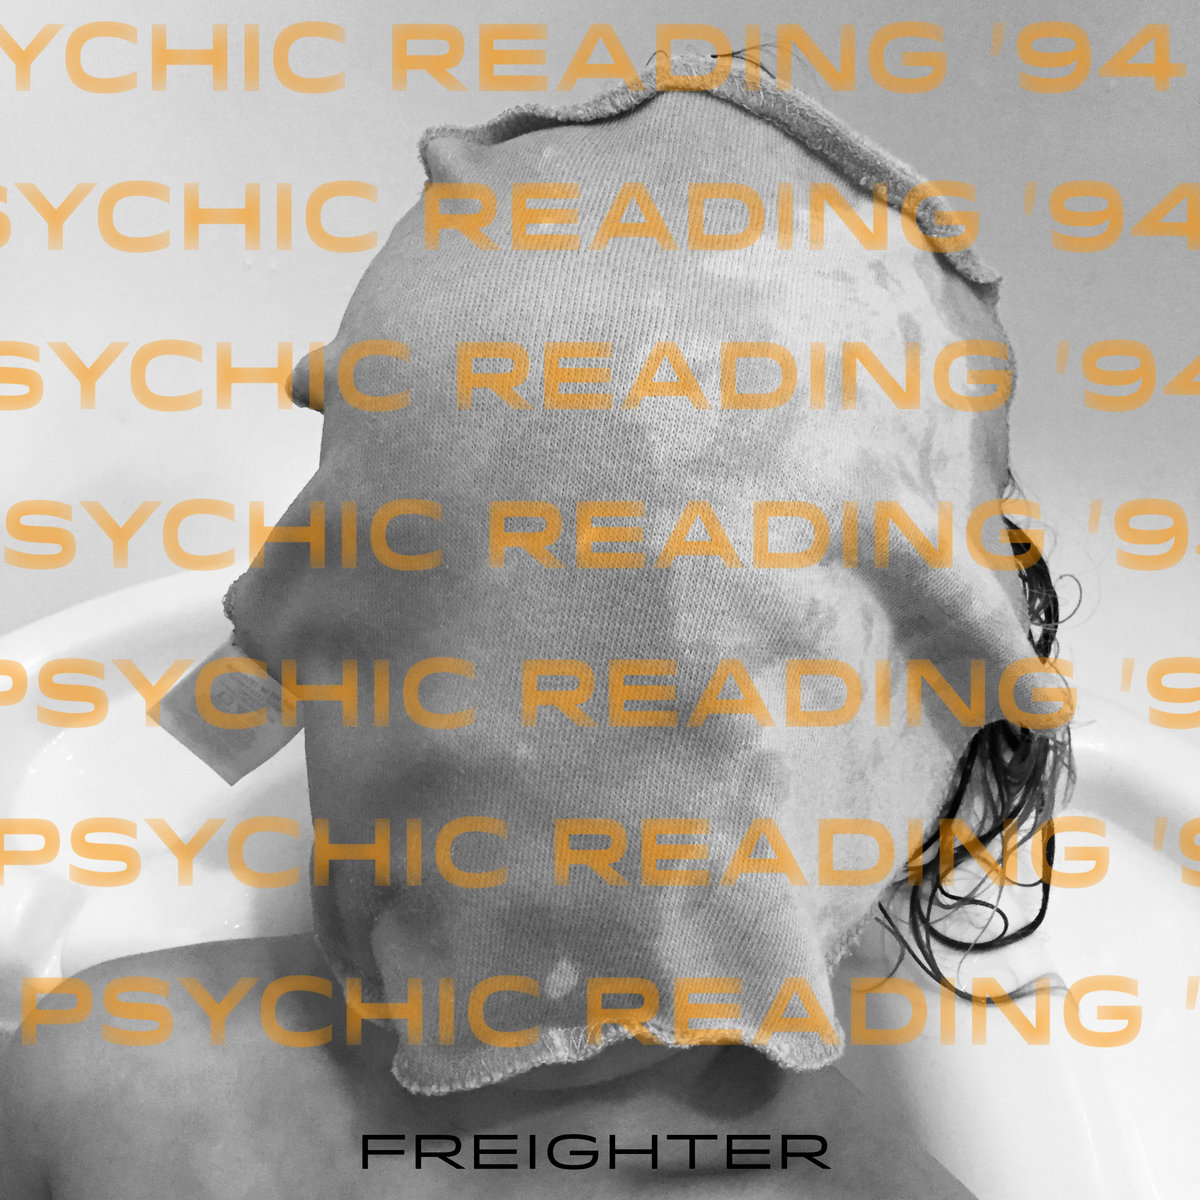 Psychic Reading '94 by Freighter